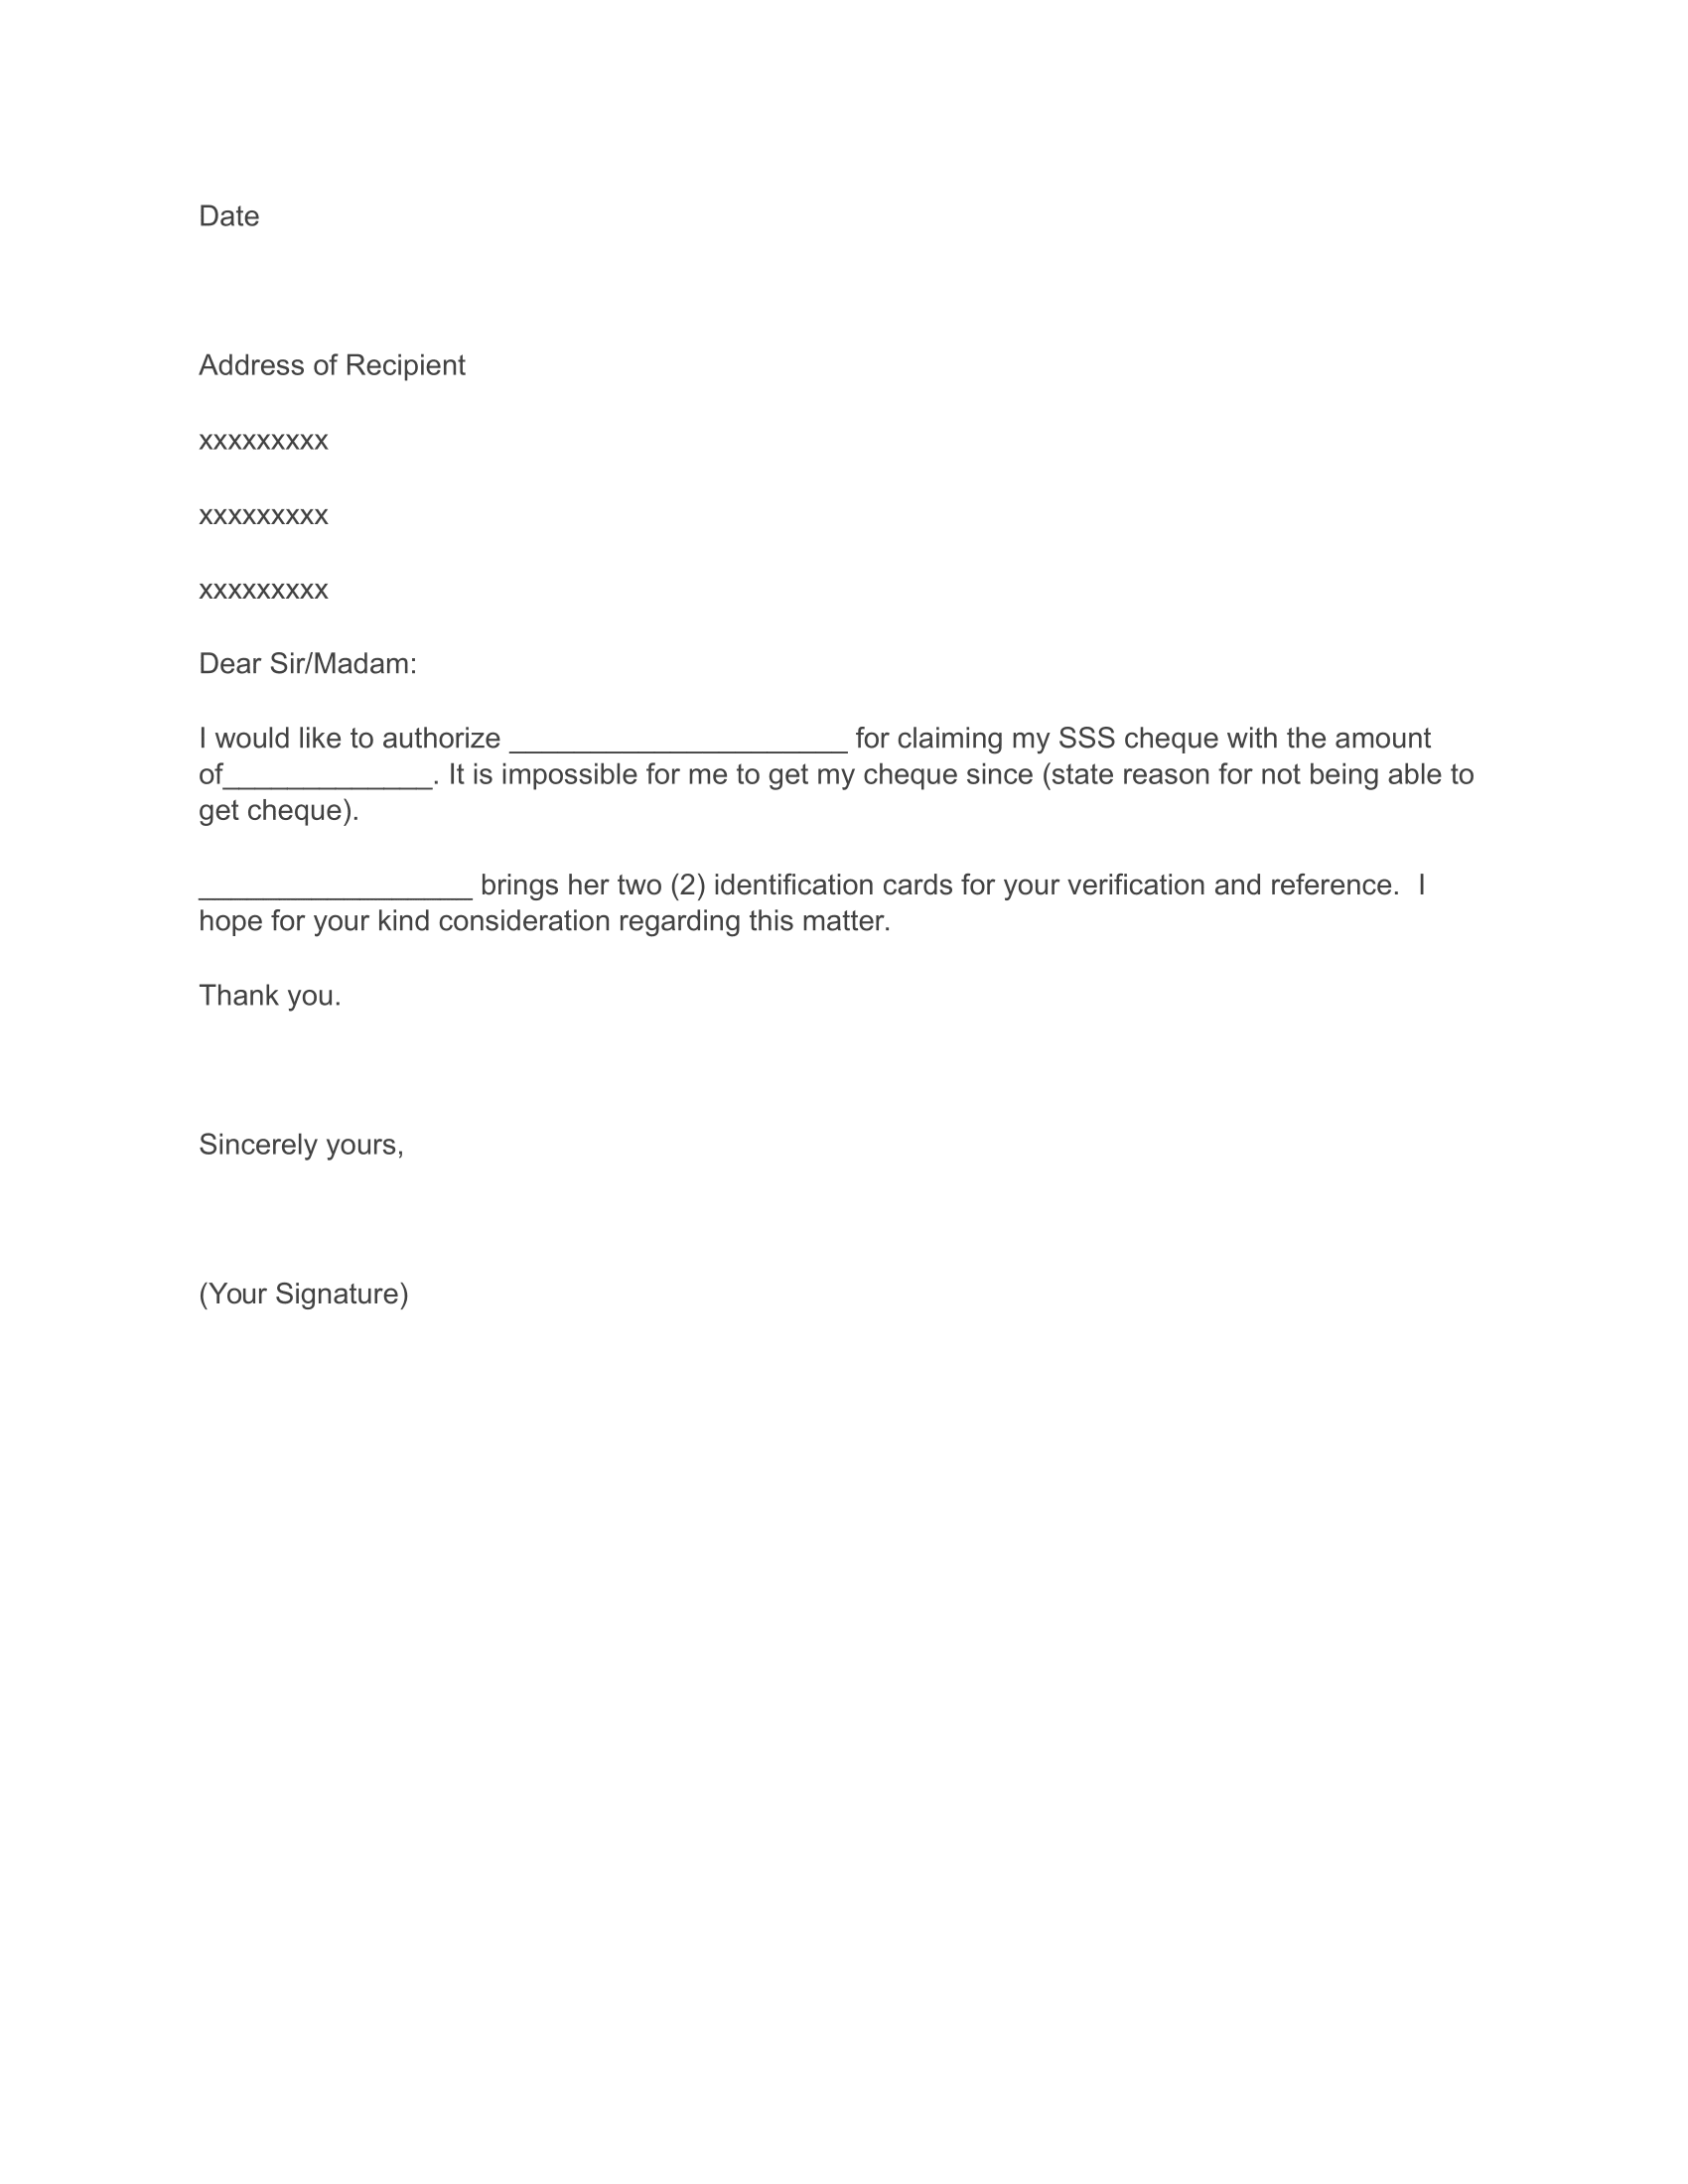 Authorization Letter Format for SSS